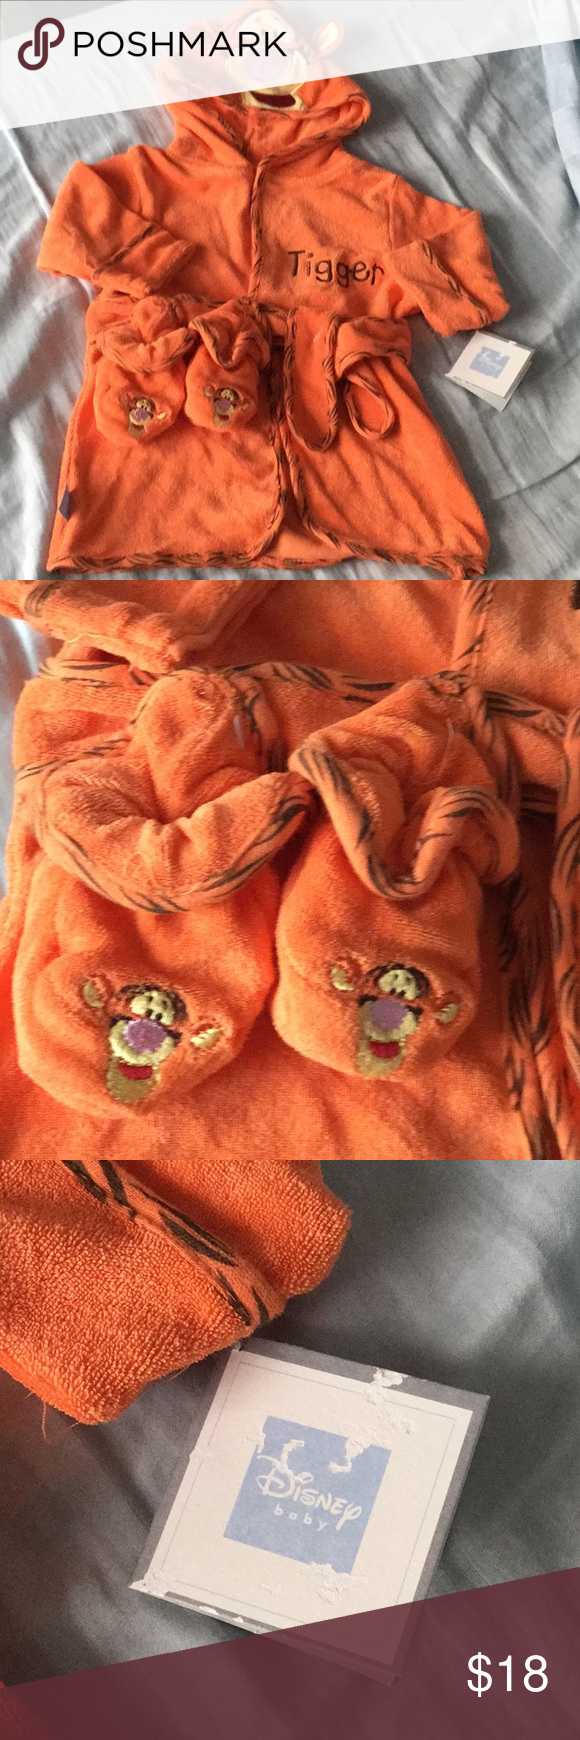 Tiger 🐯 bathrobe Brand new Tiger 🐯 bathrobe size 0-9 months. Come with slippers   Ask questions. No trades Disney Other